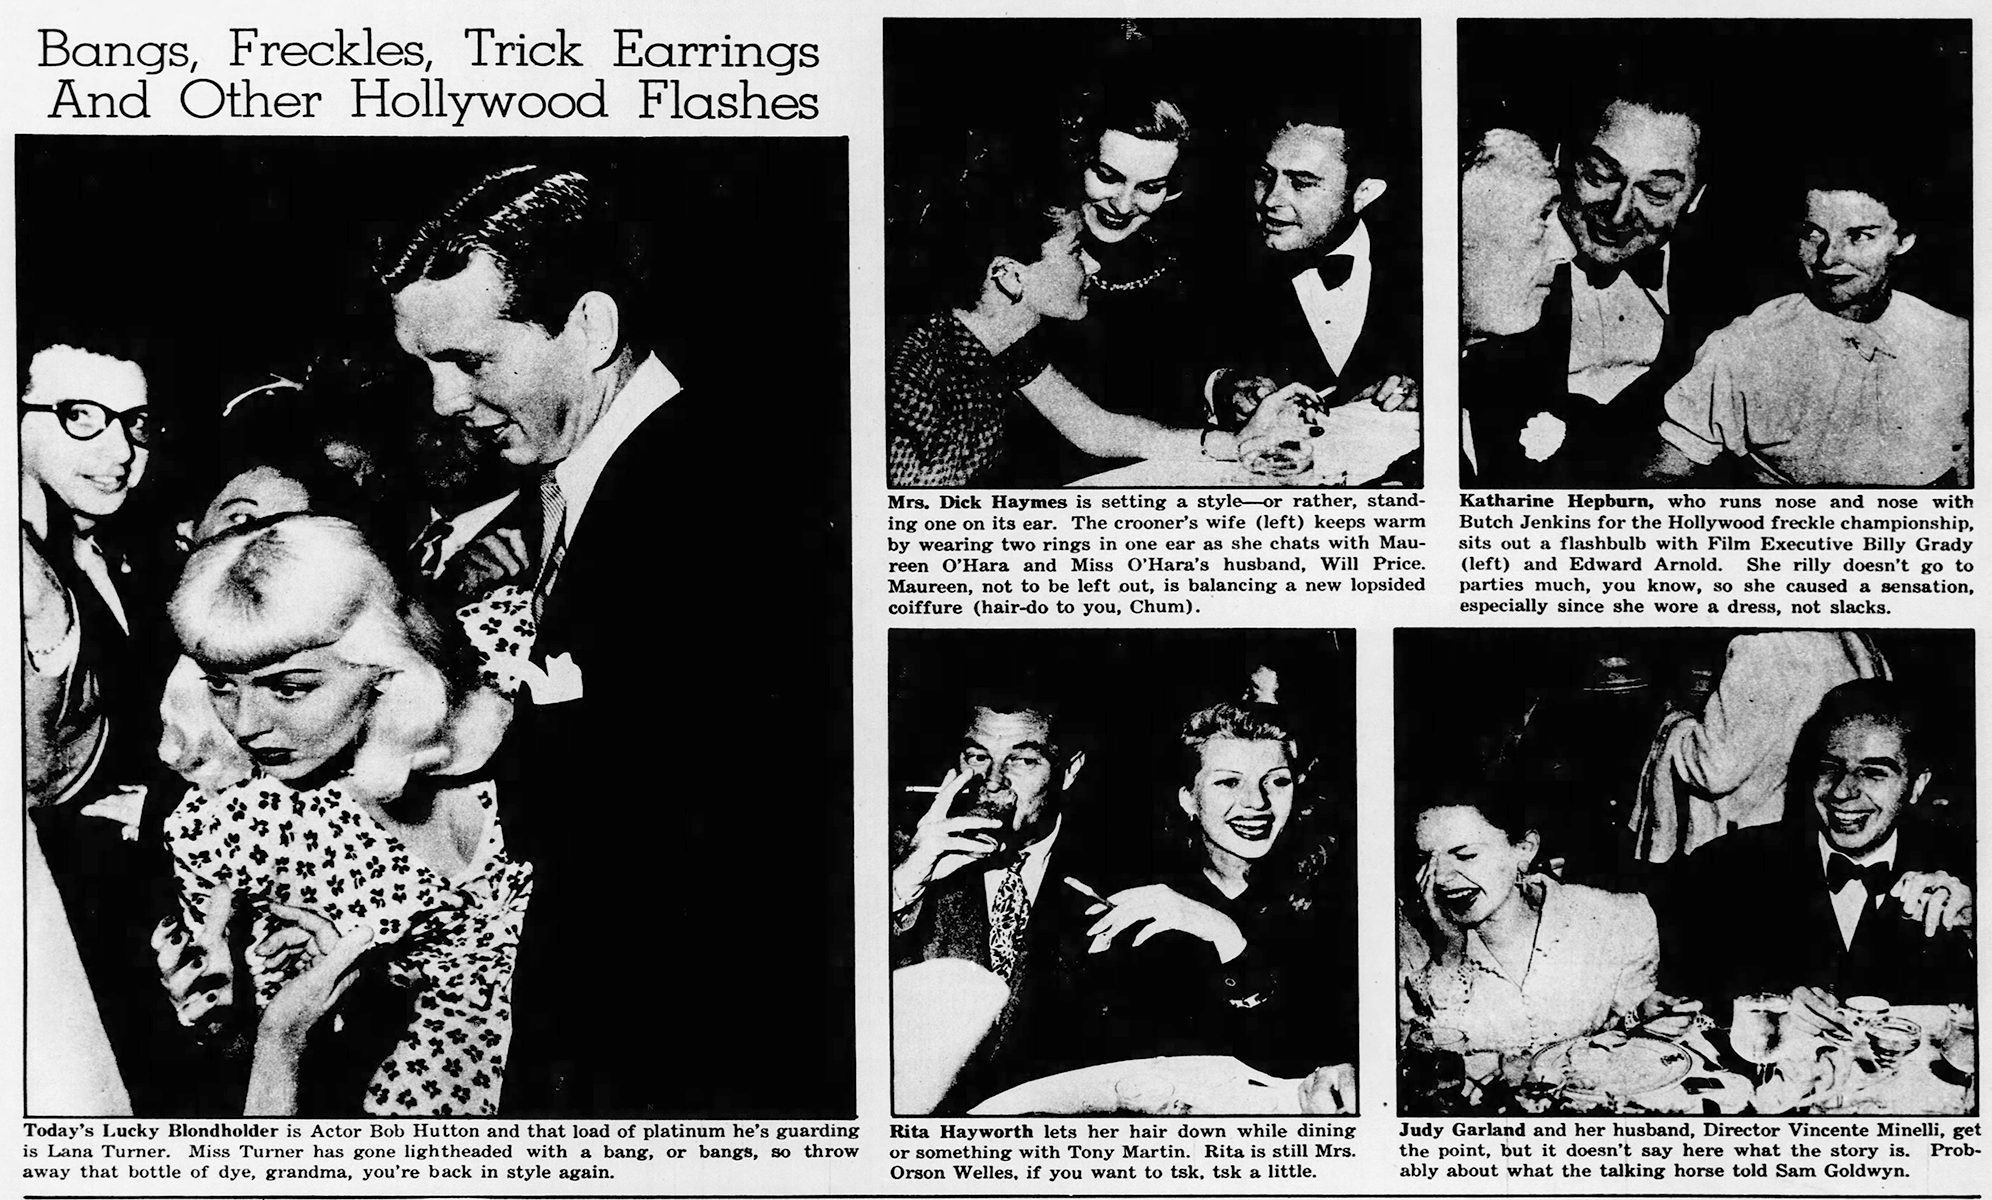 On This Day In Judy Garland's Life And Career – July 21